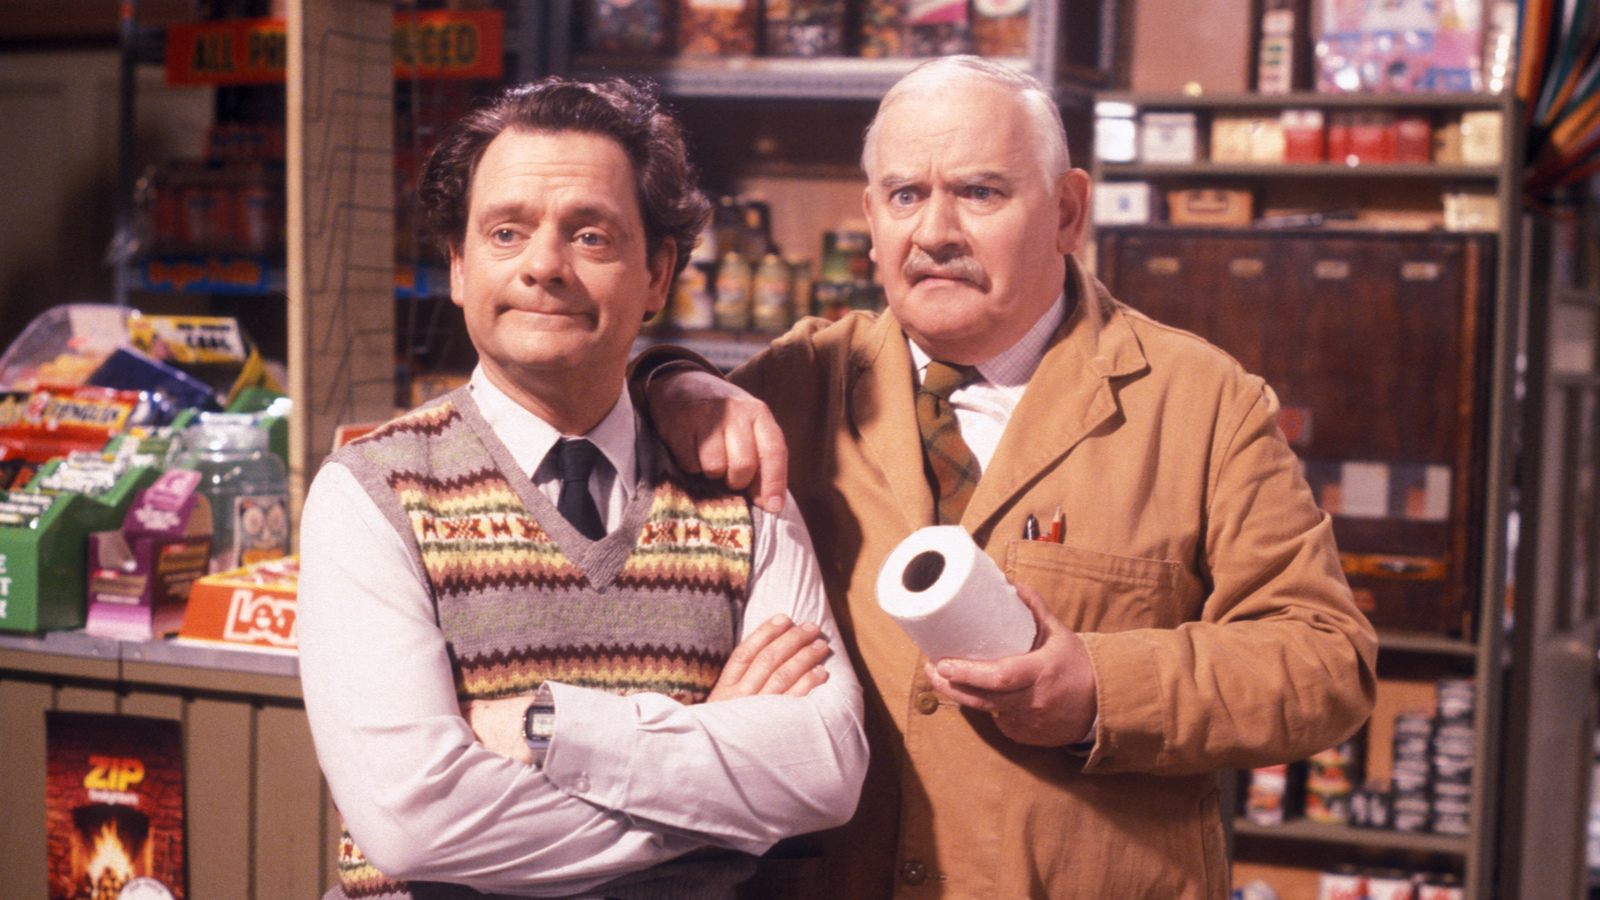 A still from Open All Hours showing two of the main cast members